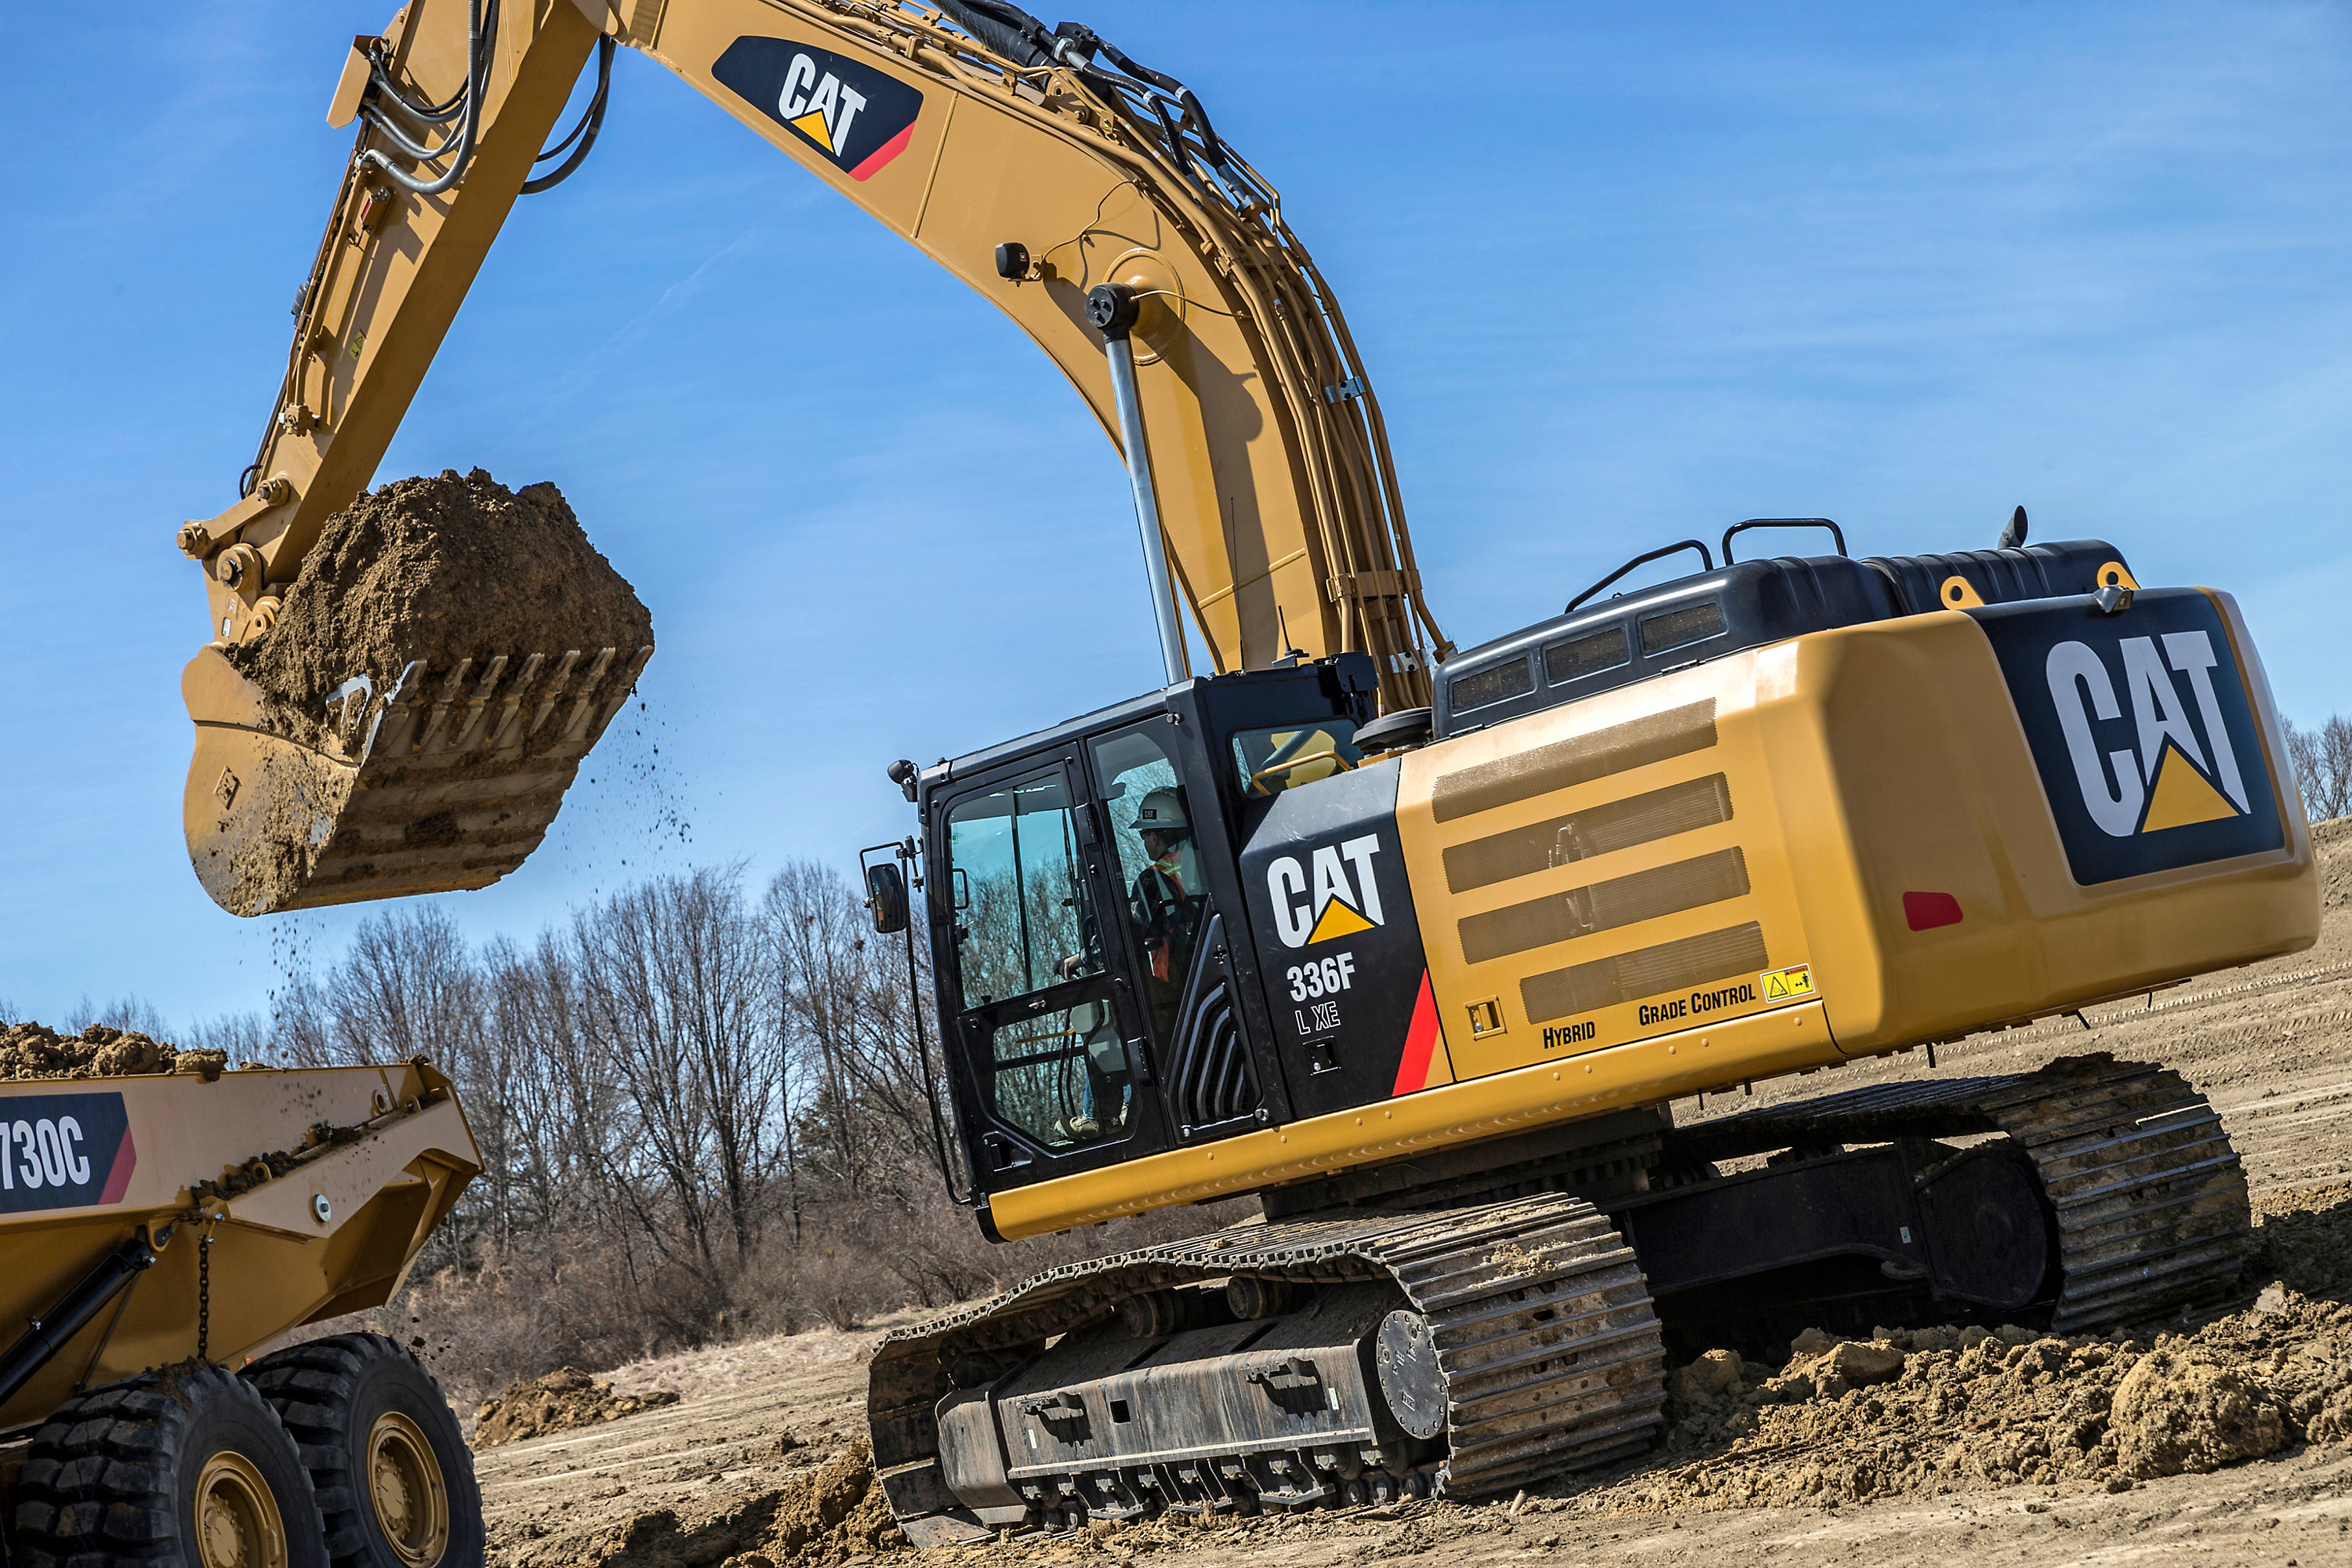 CAT equips more excavators with cost saving CAT connect technology